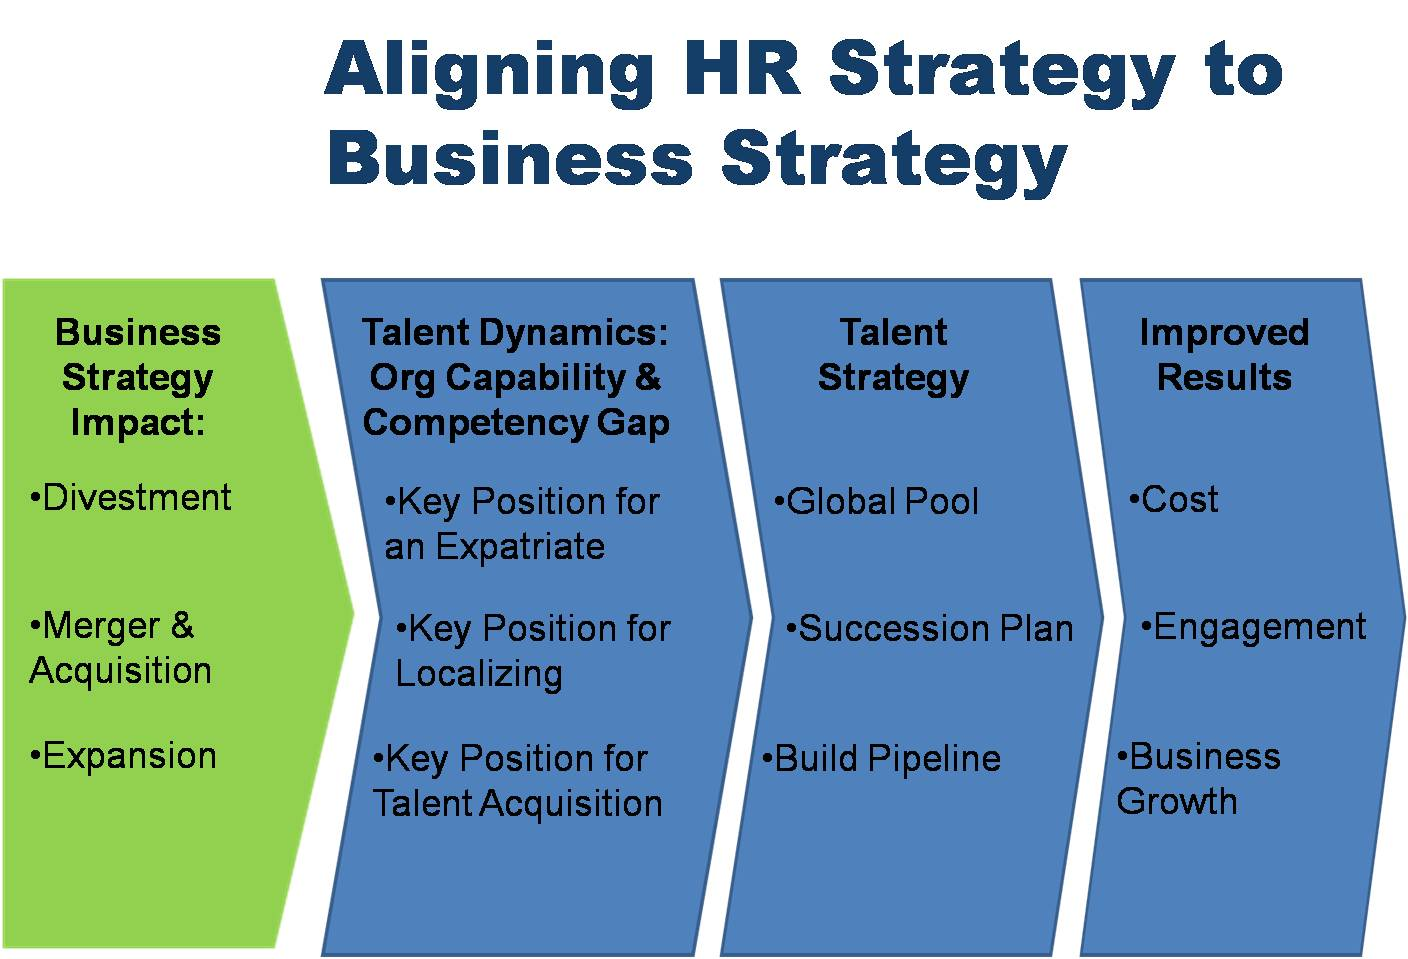 microsoft hr strategy Microsoft india's hr strategy was focused on building the organizational capability and » aligning local hr practices to the corporate mission and global.